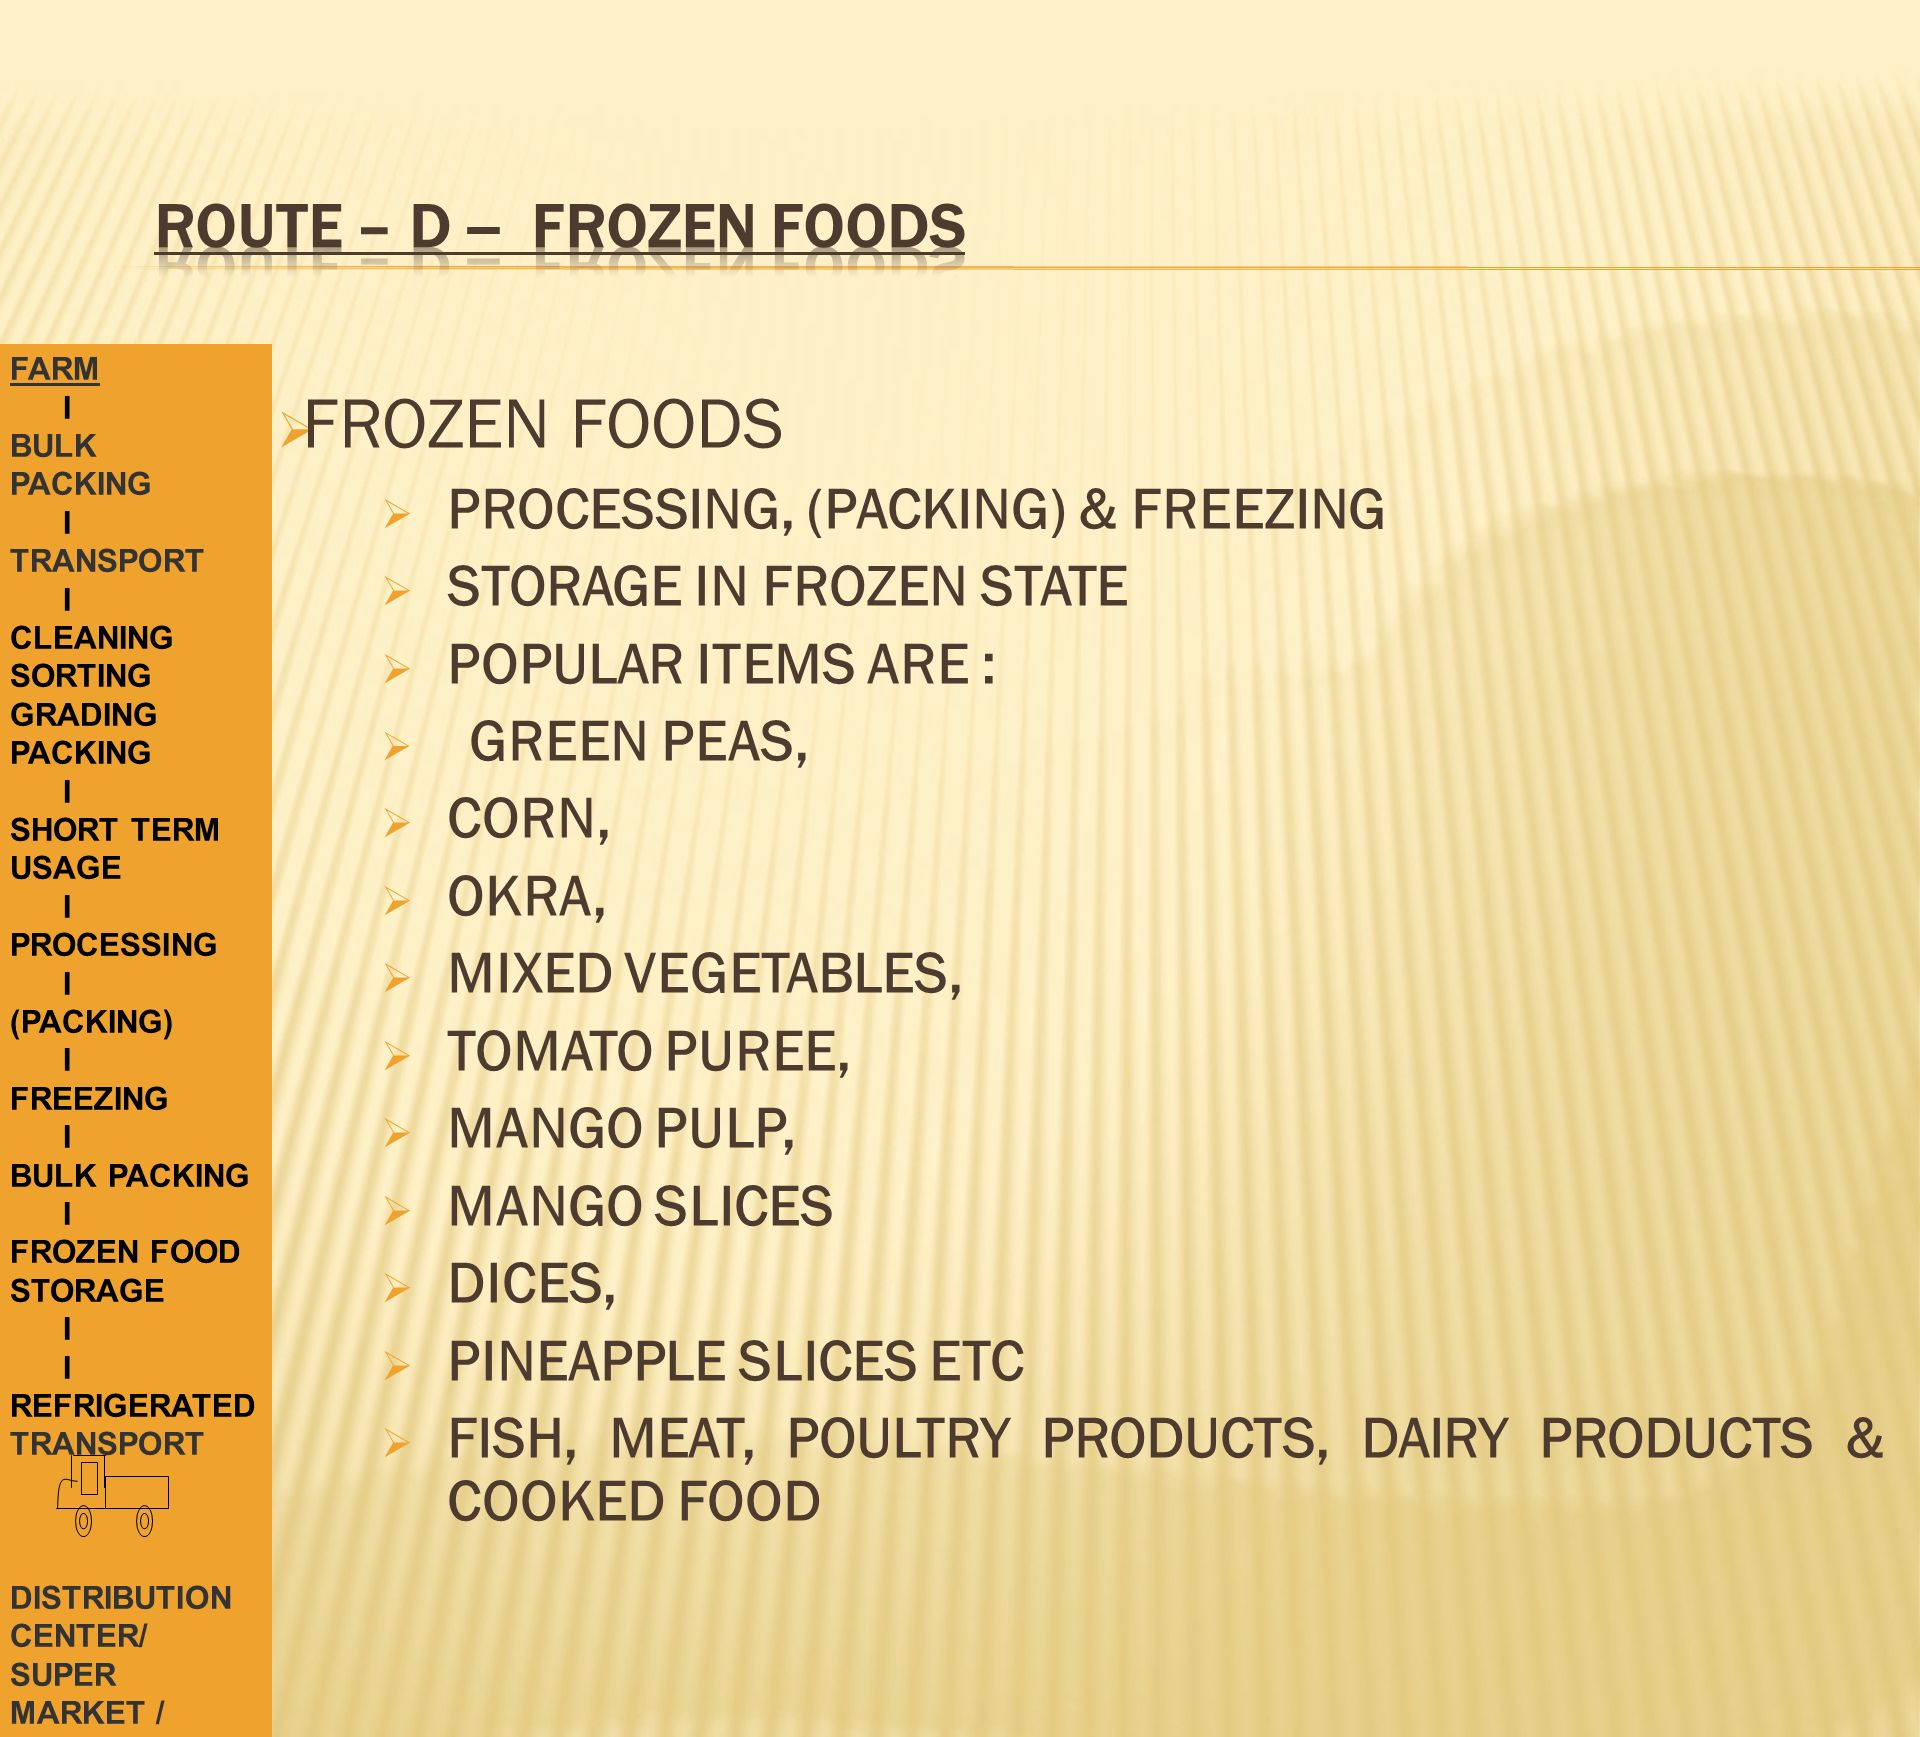 ROUTE – D -- FROZEN FOODS